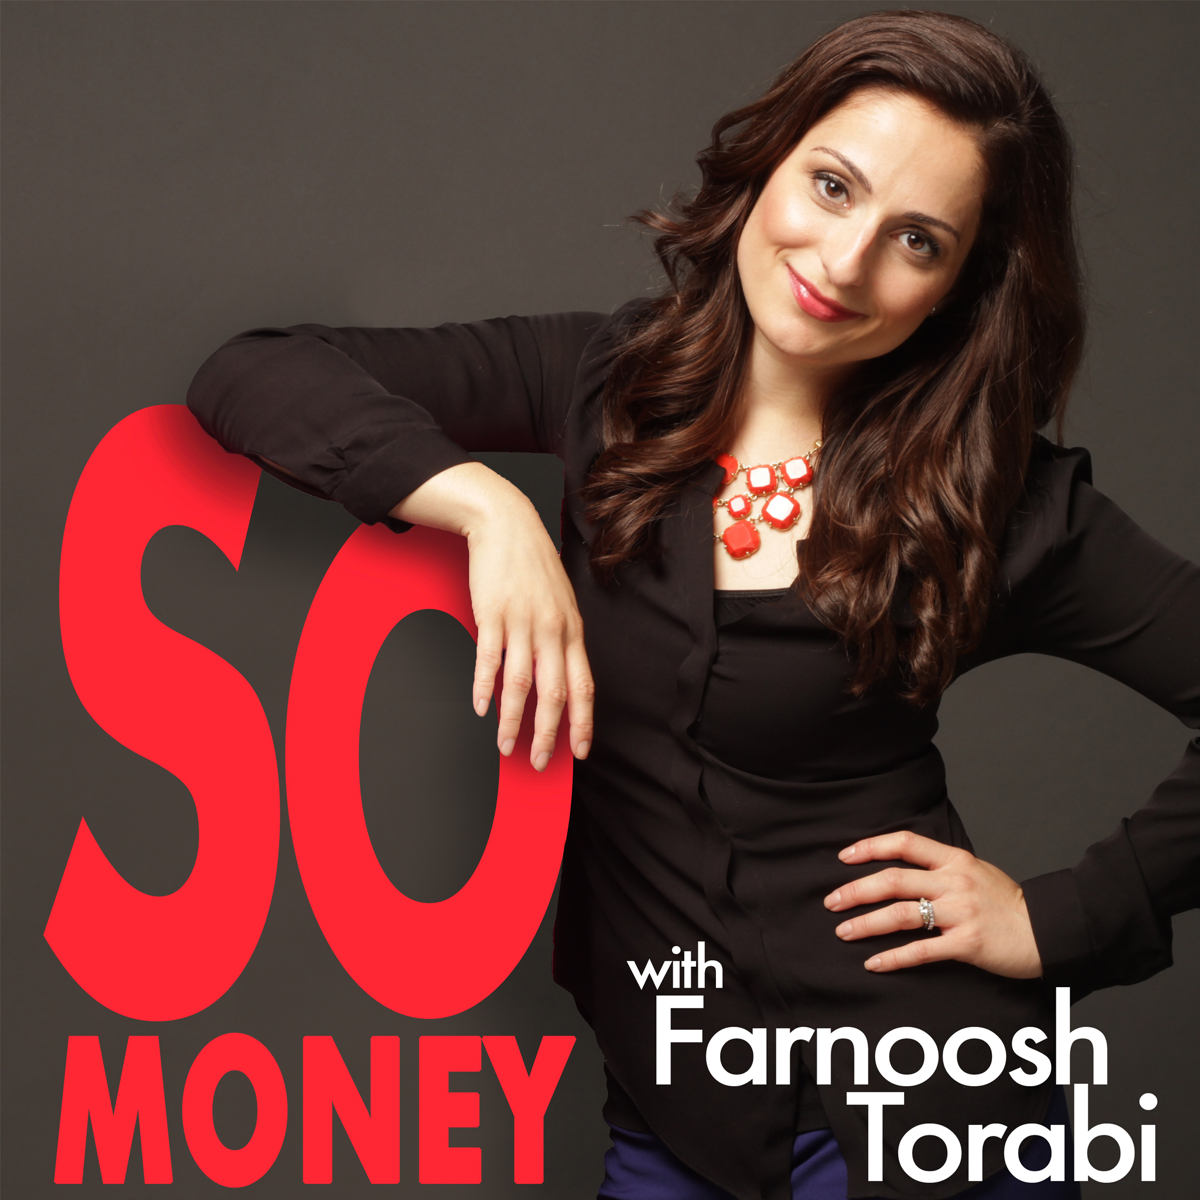 Best episodes of So Money with Farnoosh Torabi - Stories of